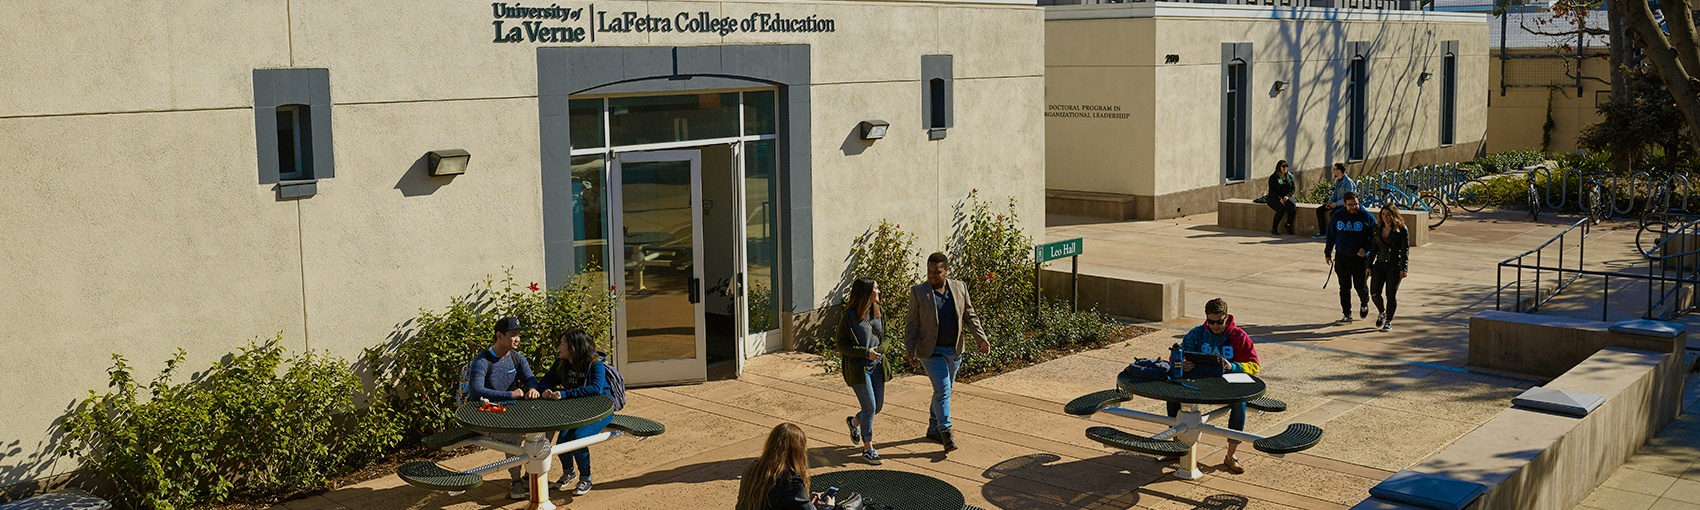 LaFetra College of Education